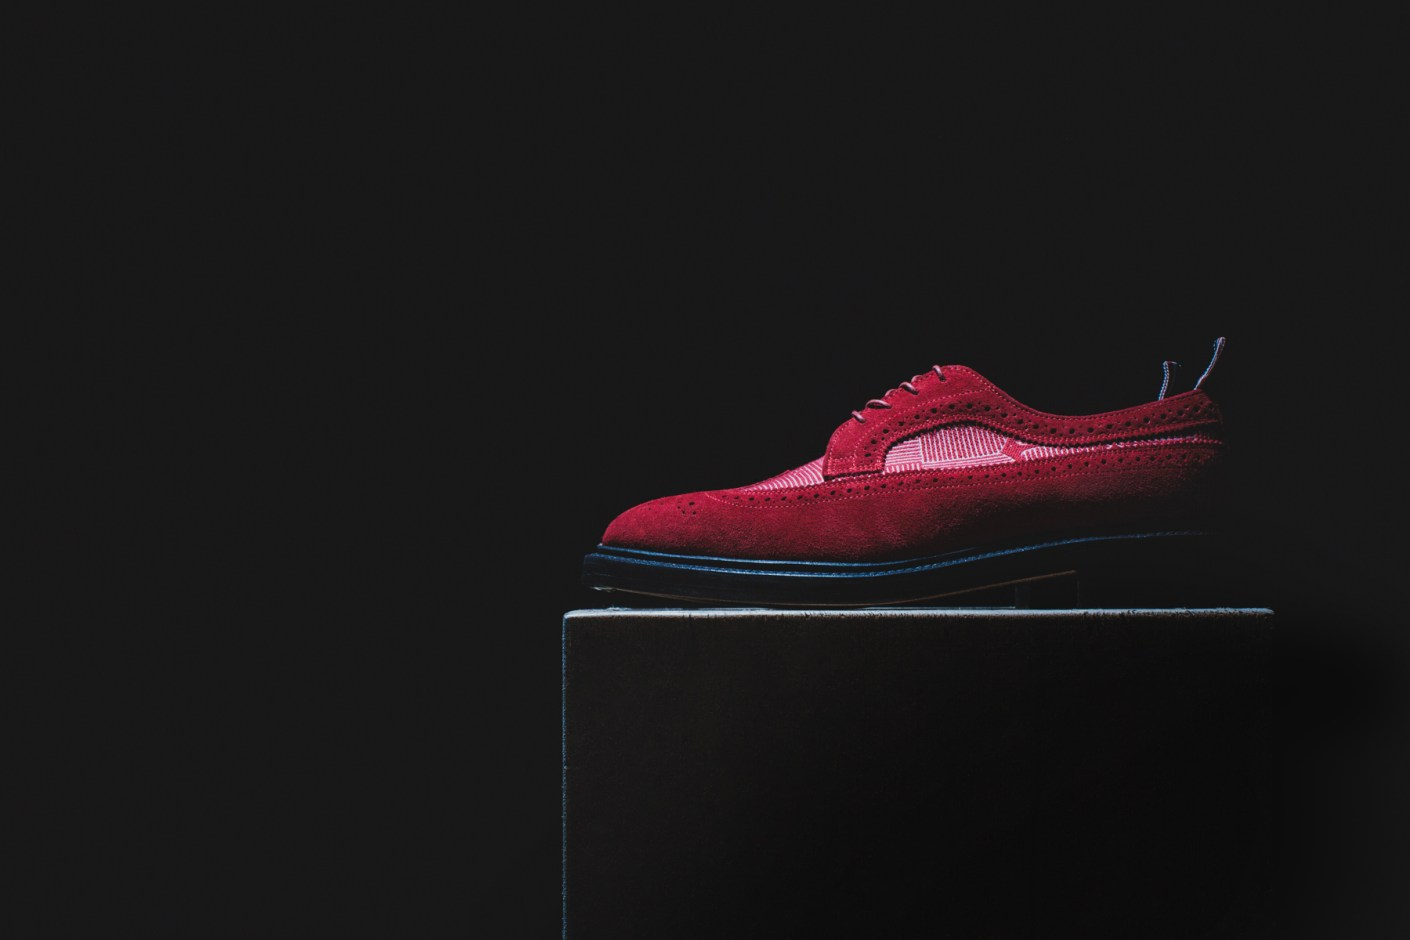 Image of Thom Browne Long Wing Shoe Red Suede and Red Anchor Cotton Stamp Jacqaurd